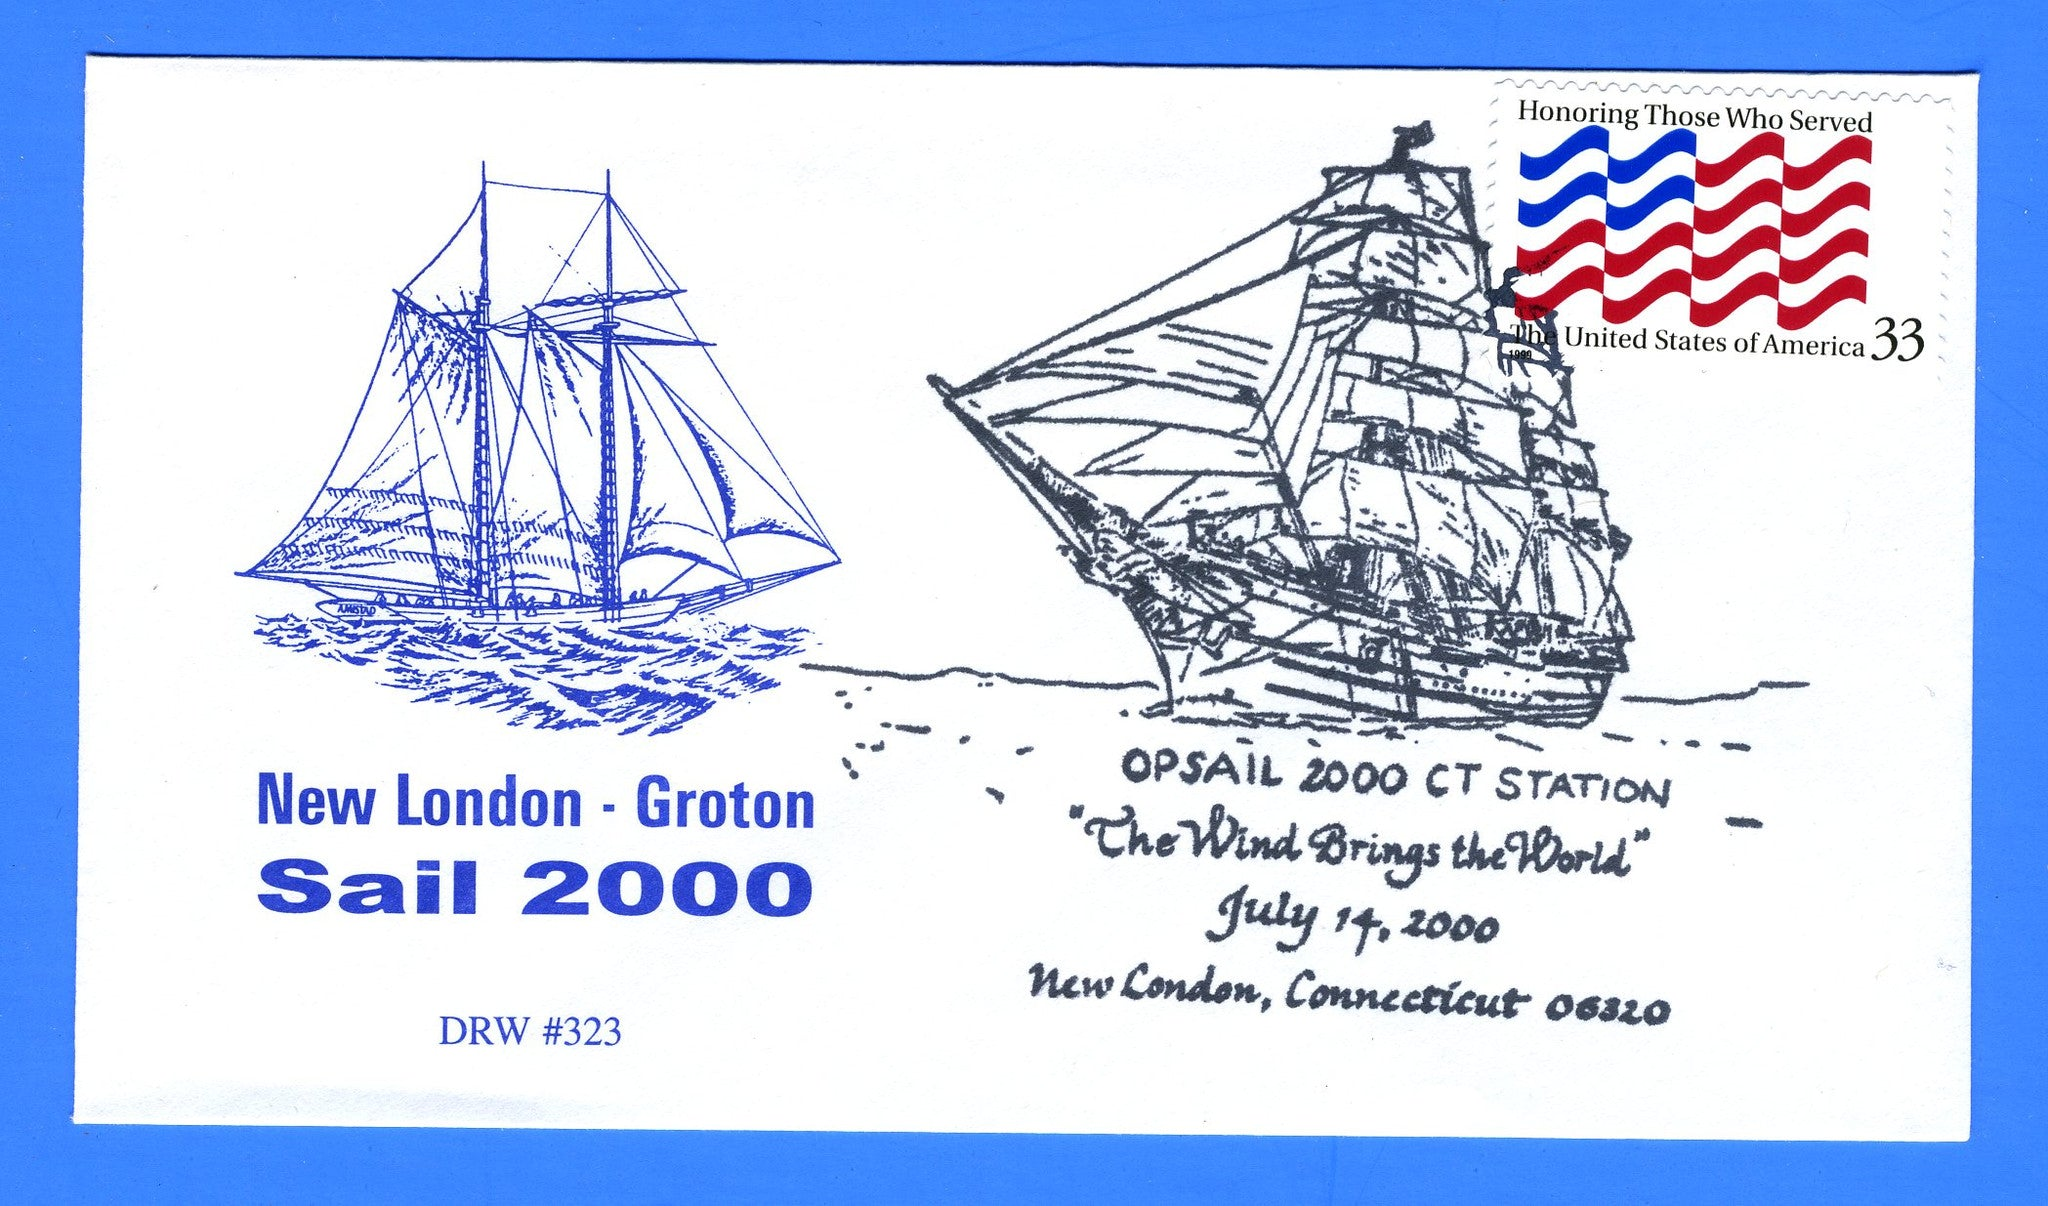 OpSail (Operation Sail 2000) July 14, 2000 - DRW 323